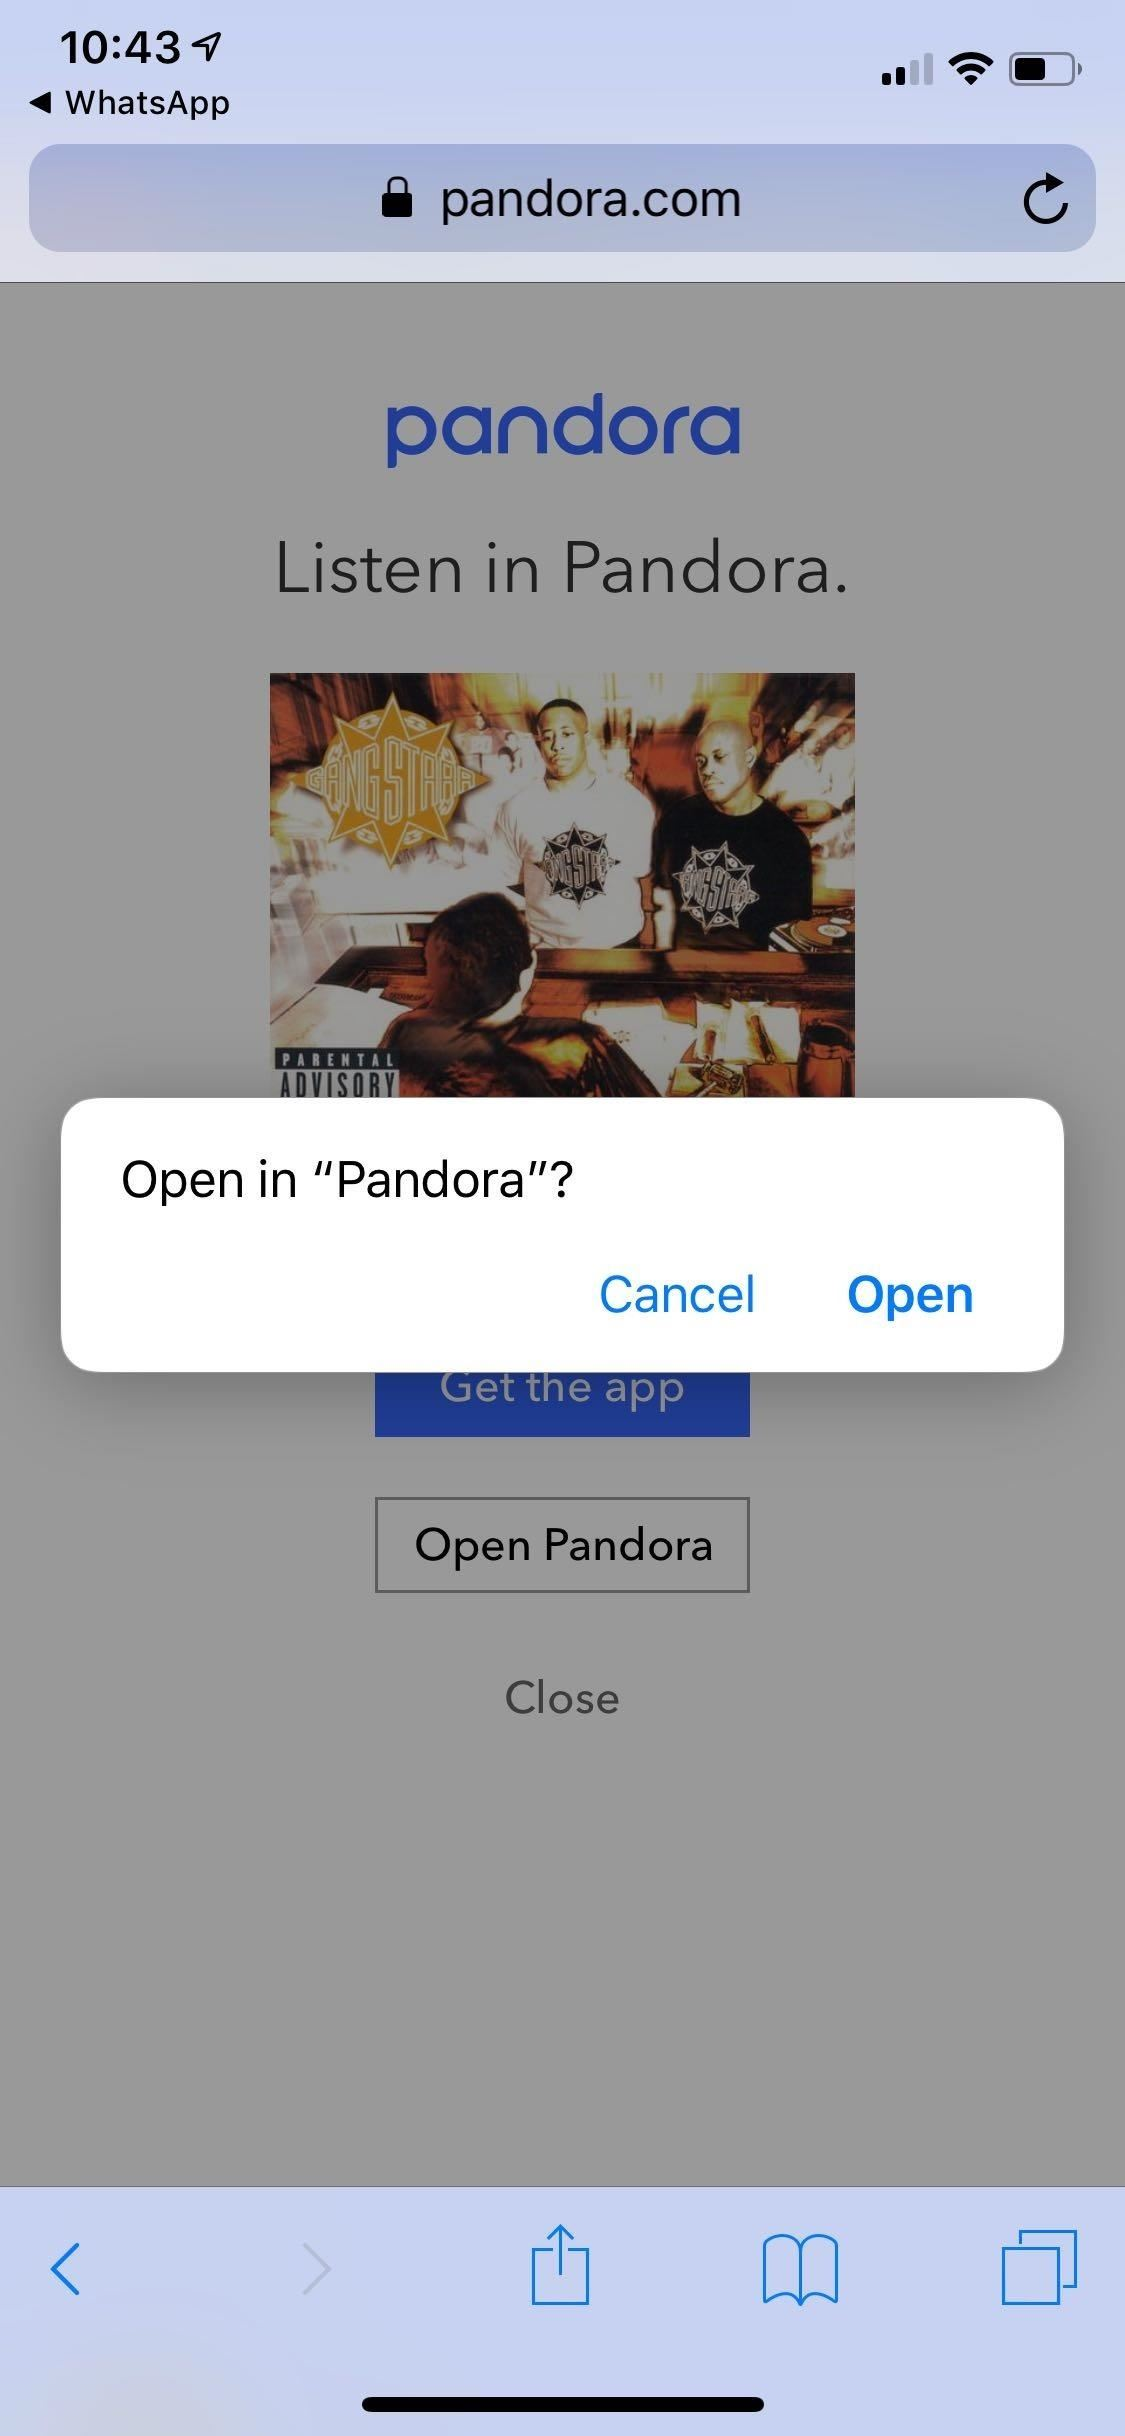 How to Share Songs from Pandora with Friends on WhatsApp, Twitter, or Facebook